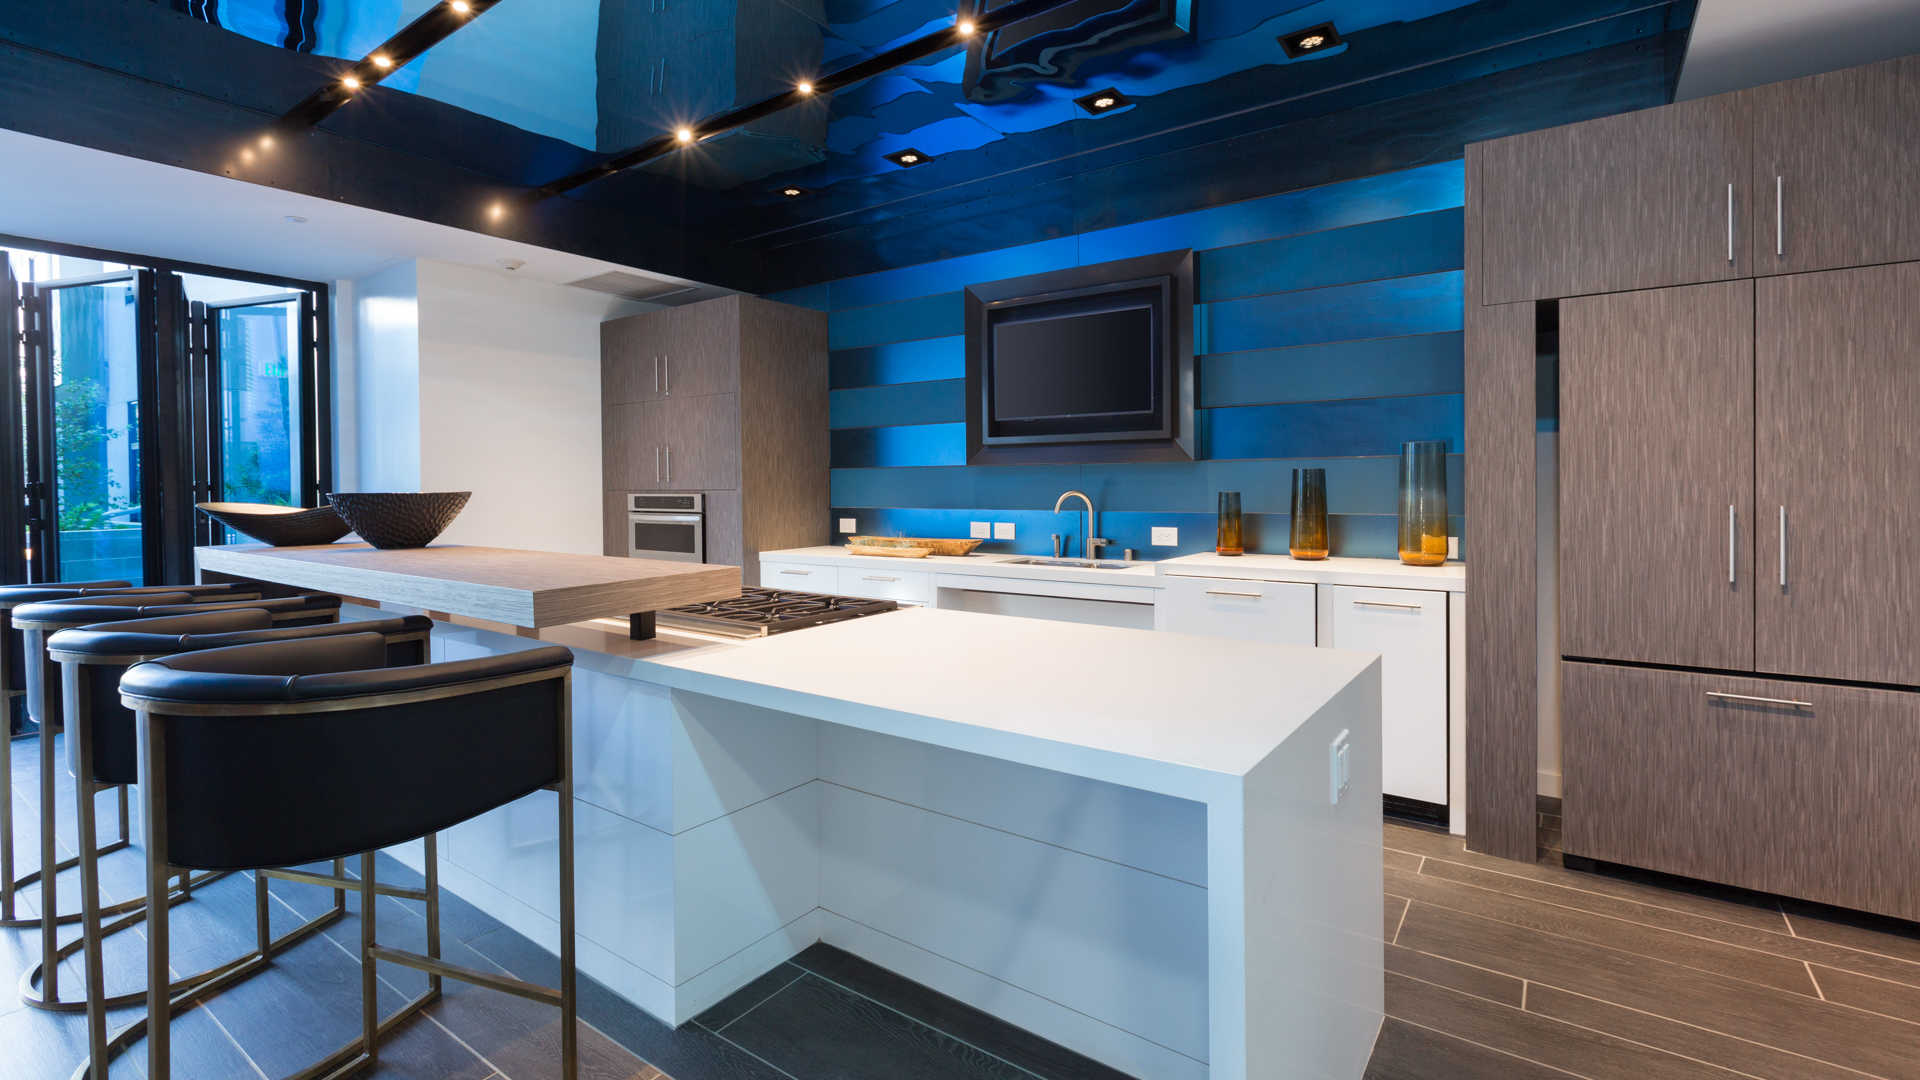 Azure apartments demonstration kitchen